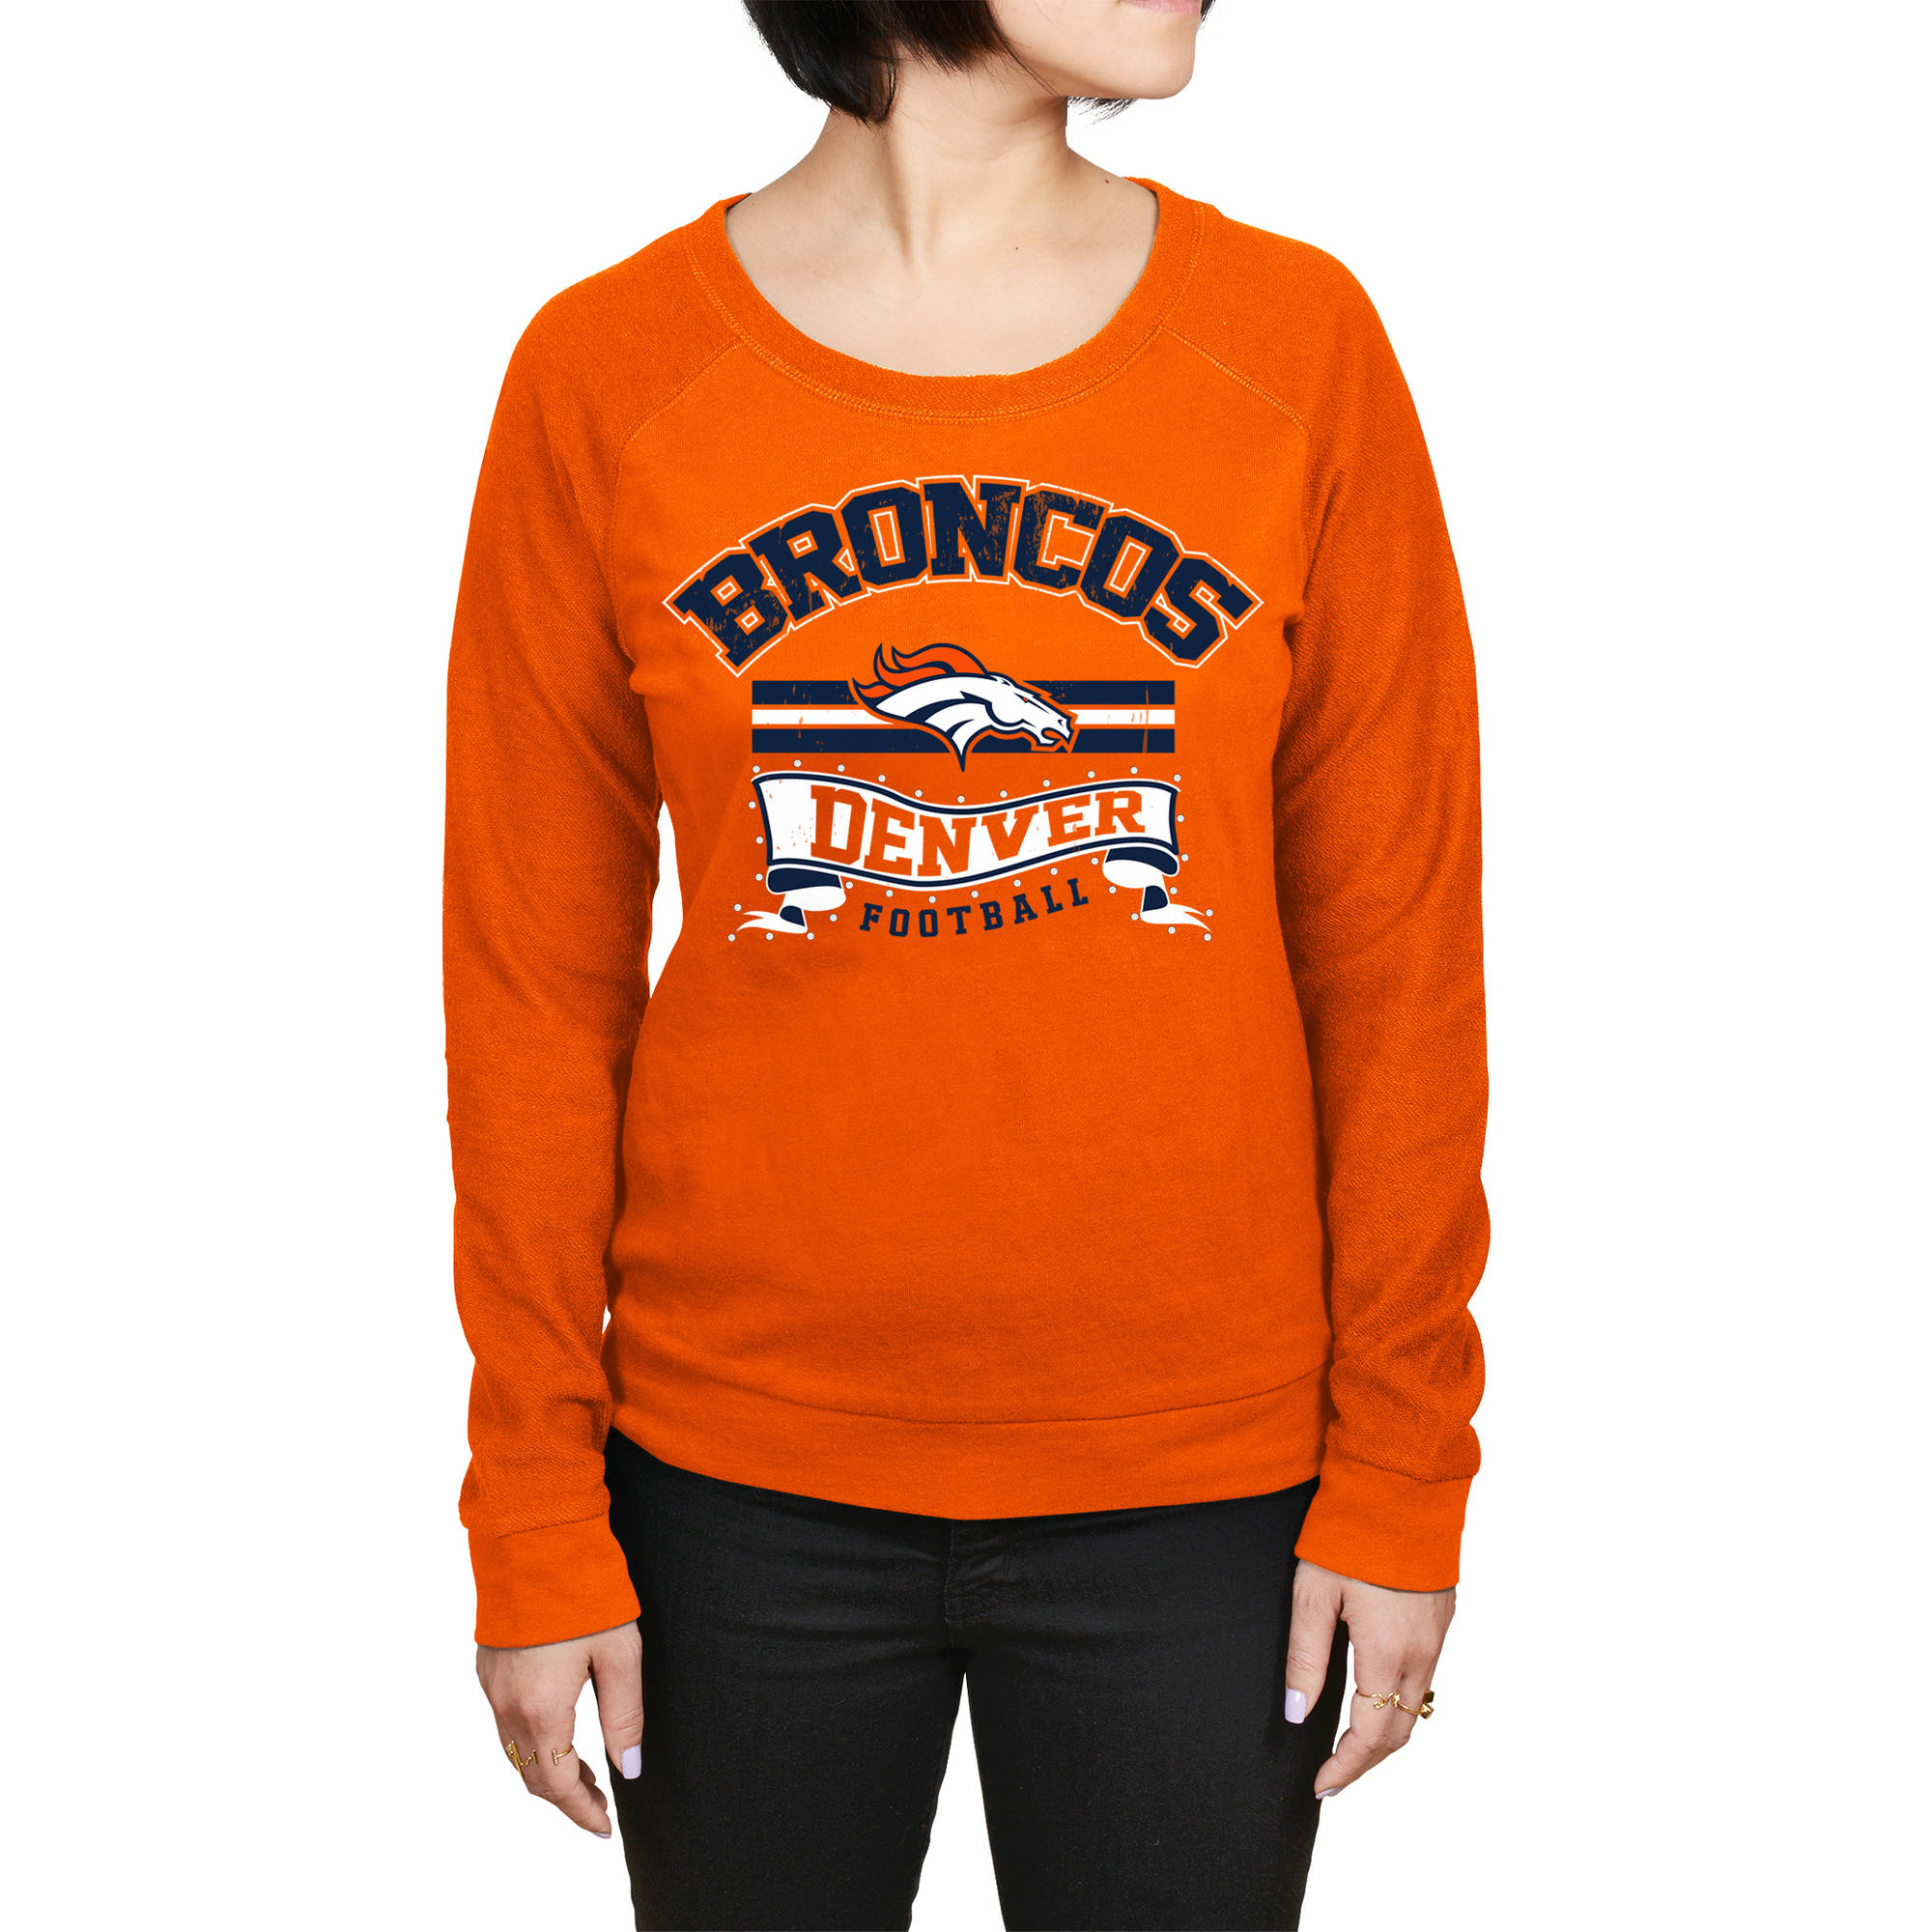 NFL Denver Broncos Juniors Fleece Top